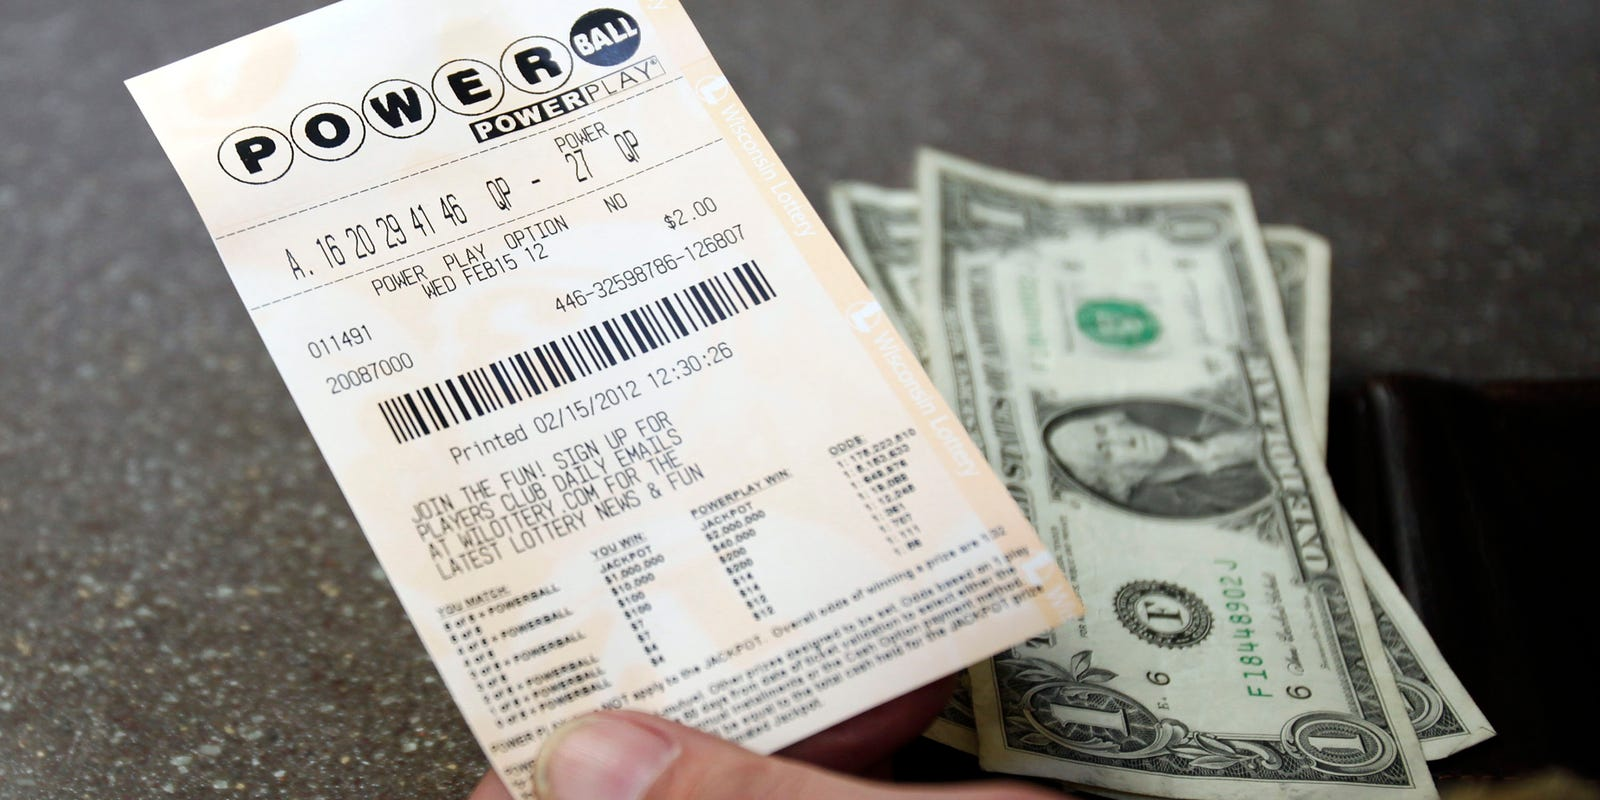 Another Winning Lottery Ticket Sold In Sheboygan